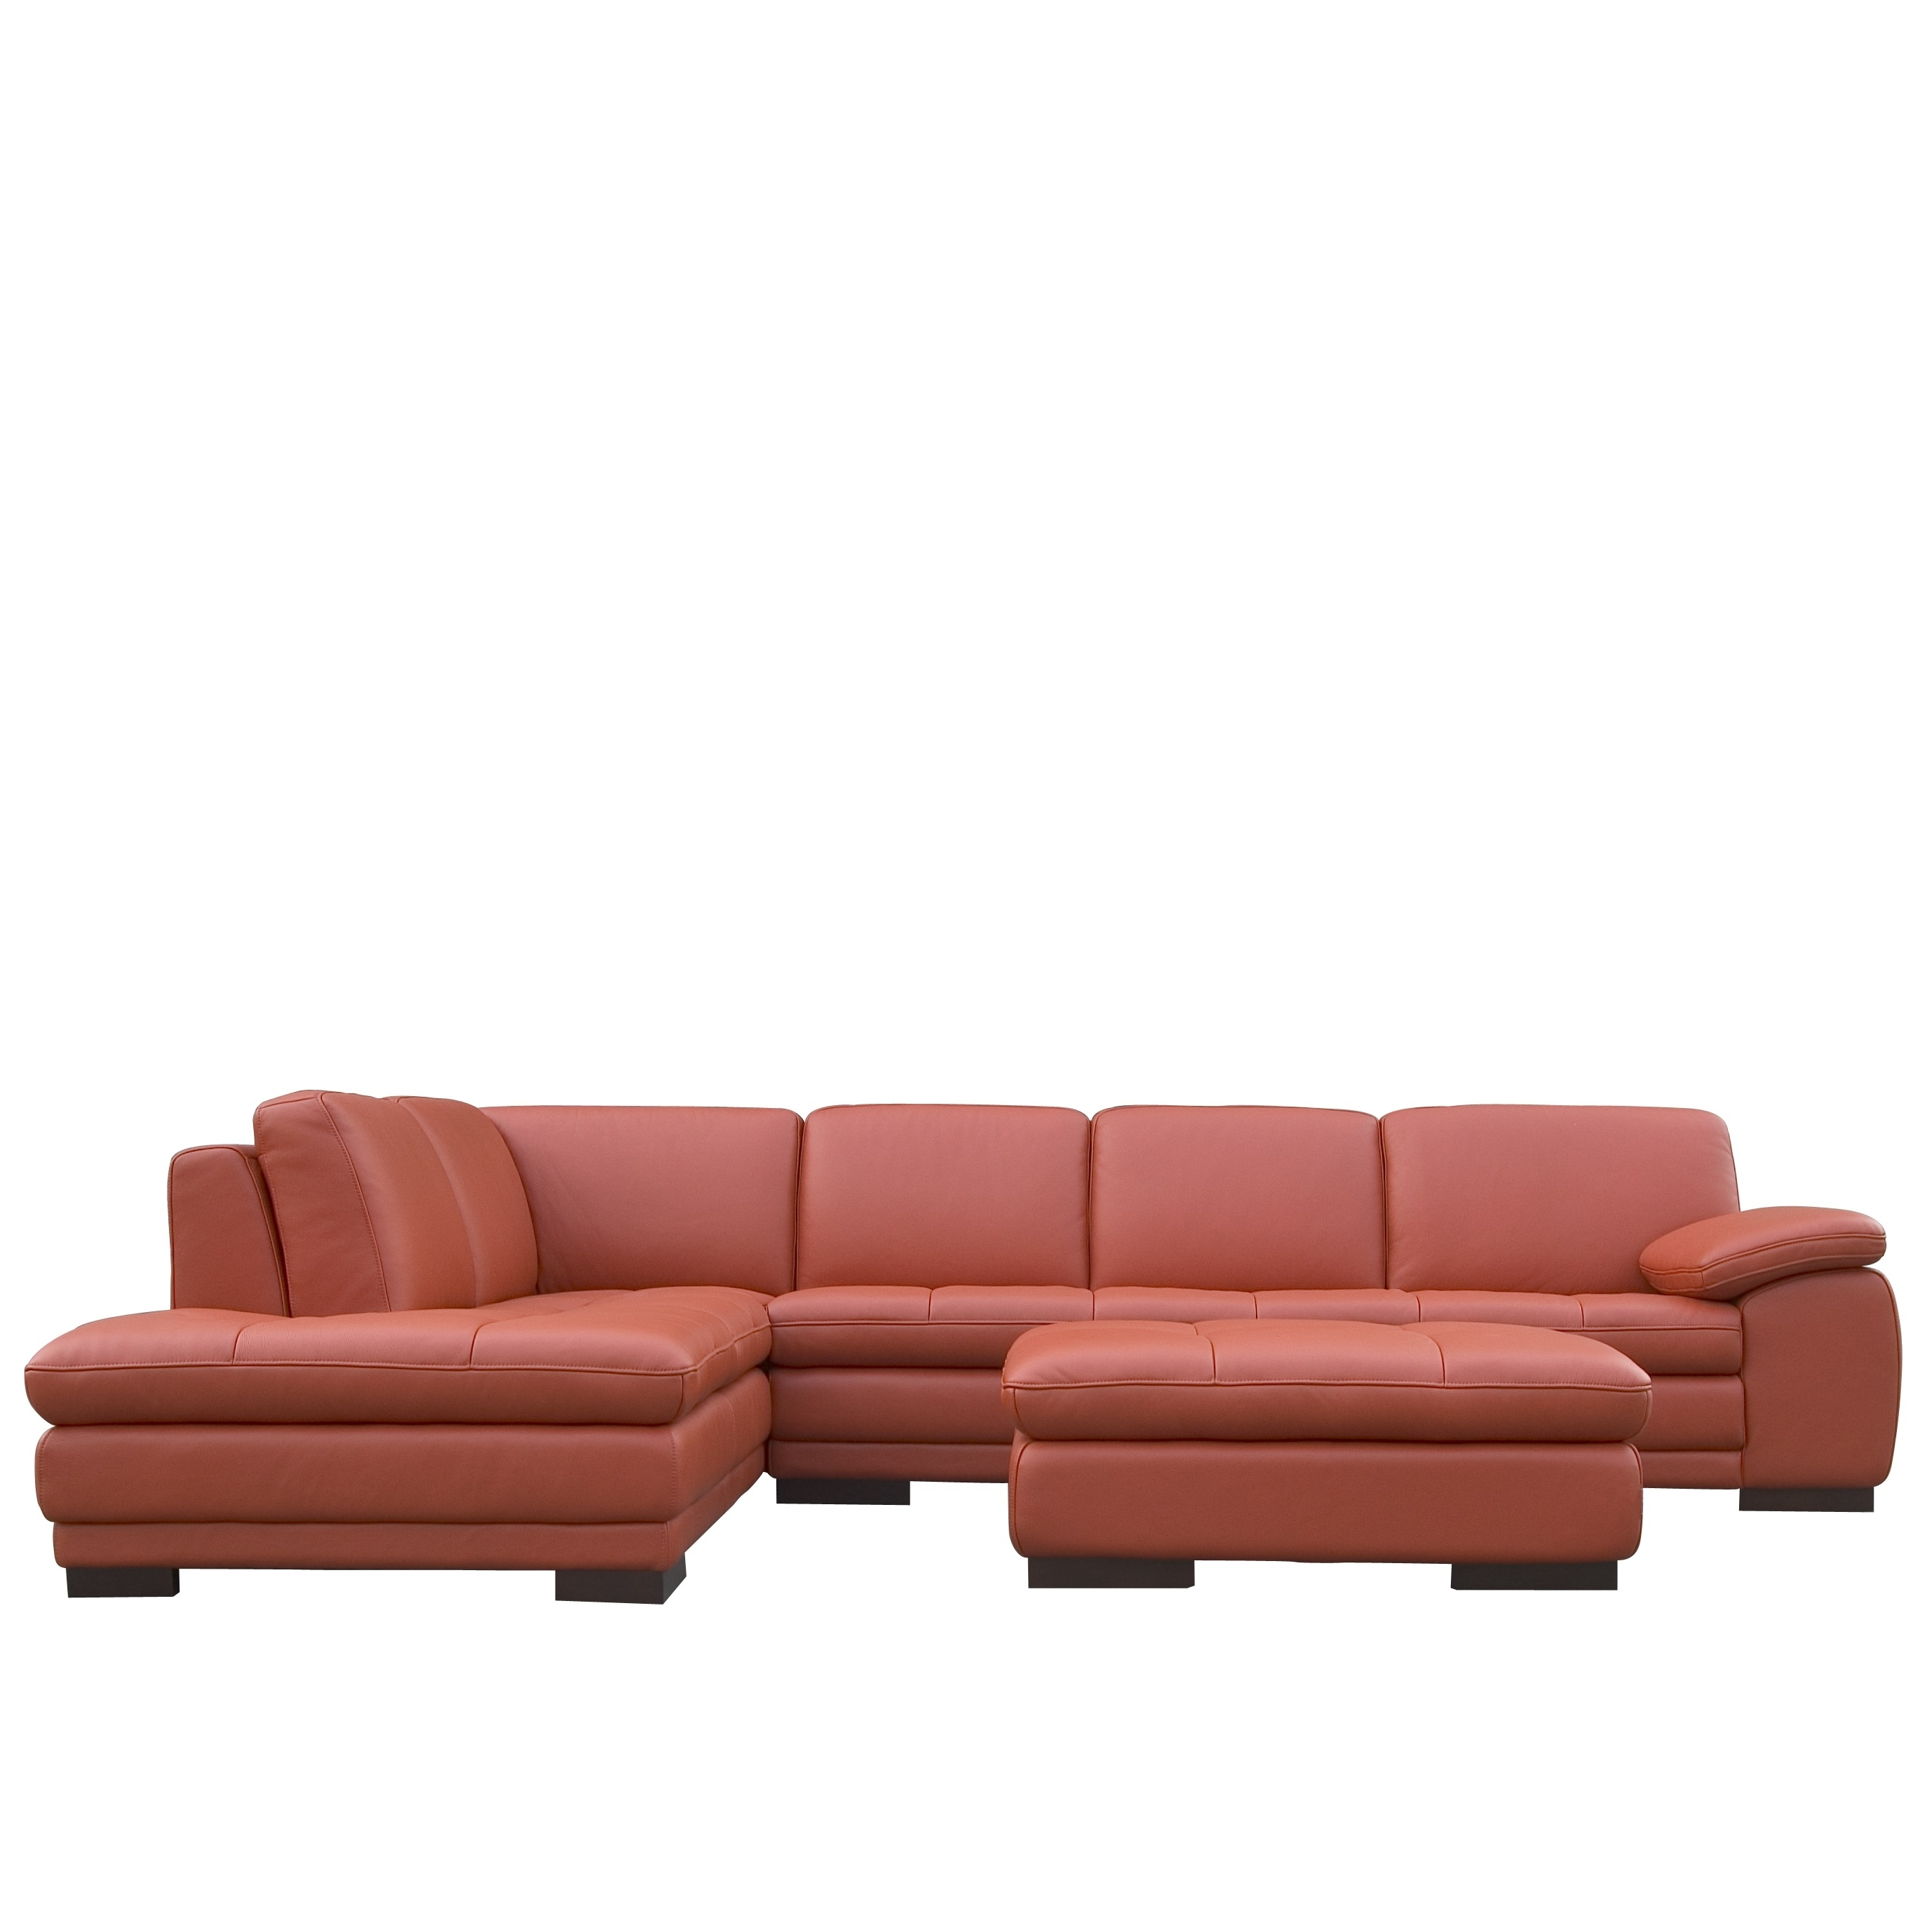 Preferred St Louis Sectional Sofas Pertaining To Sectionals Archives – House Of Denmark House Of Denmark (View 8 of 20)